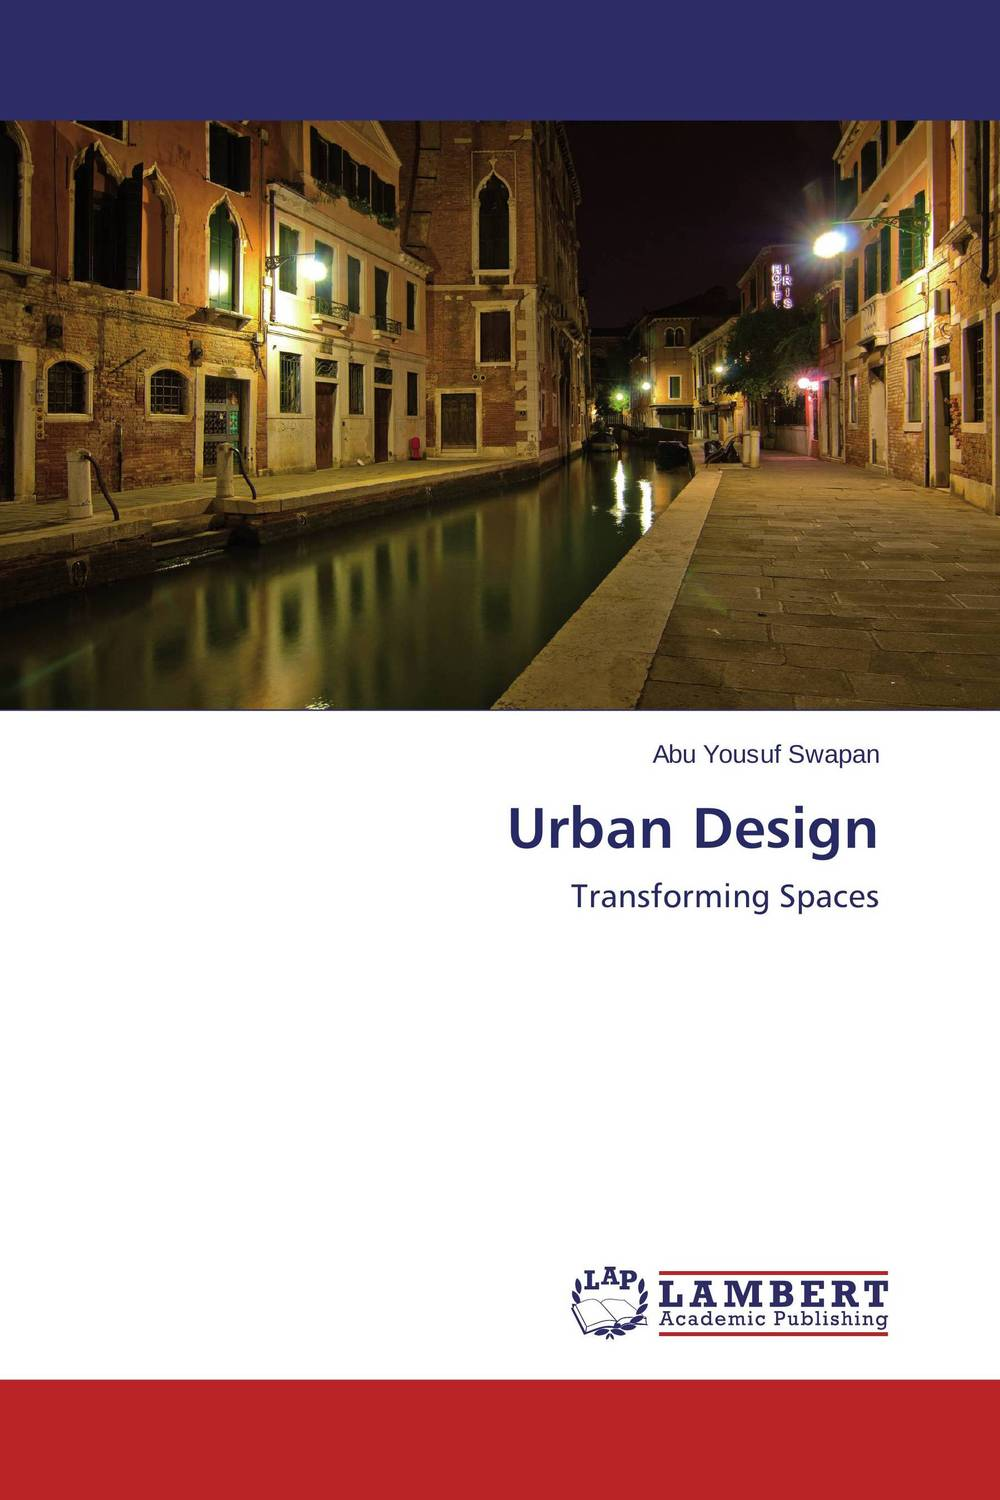 Urban Design small graphics design innovation for limited spaces